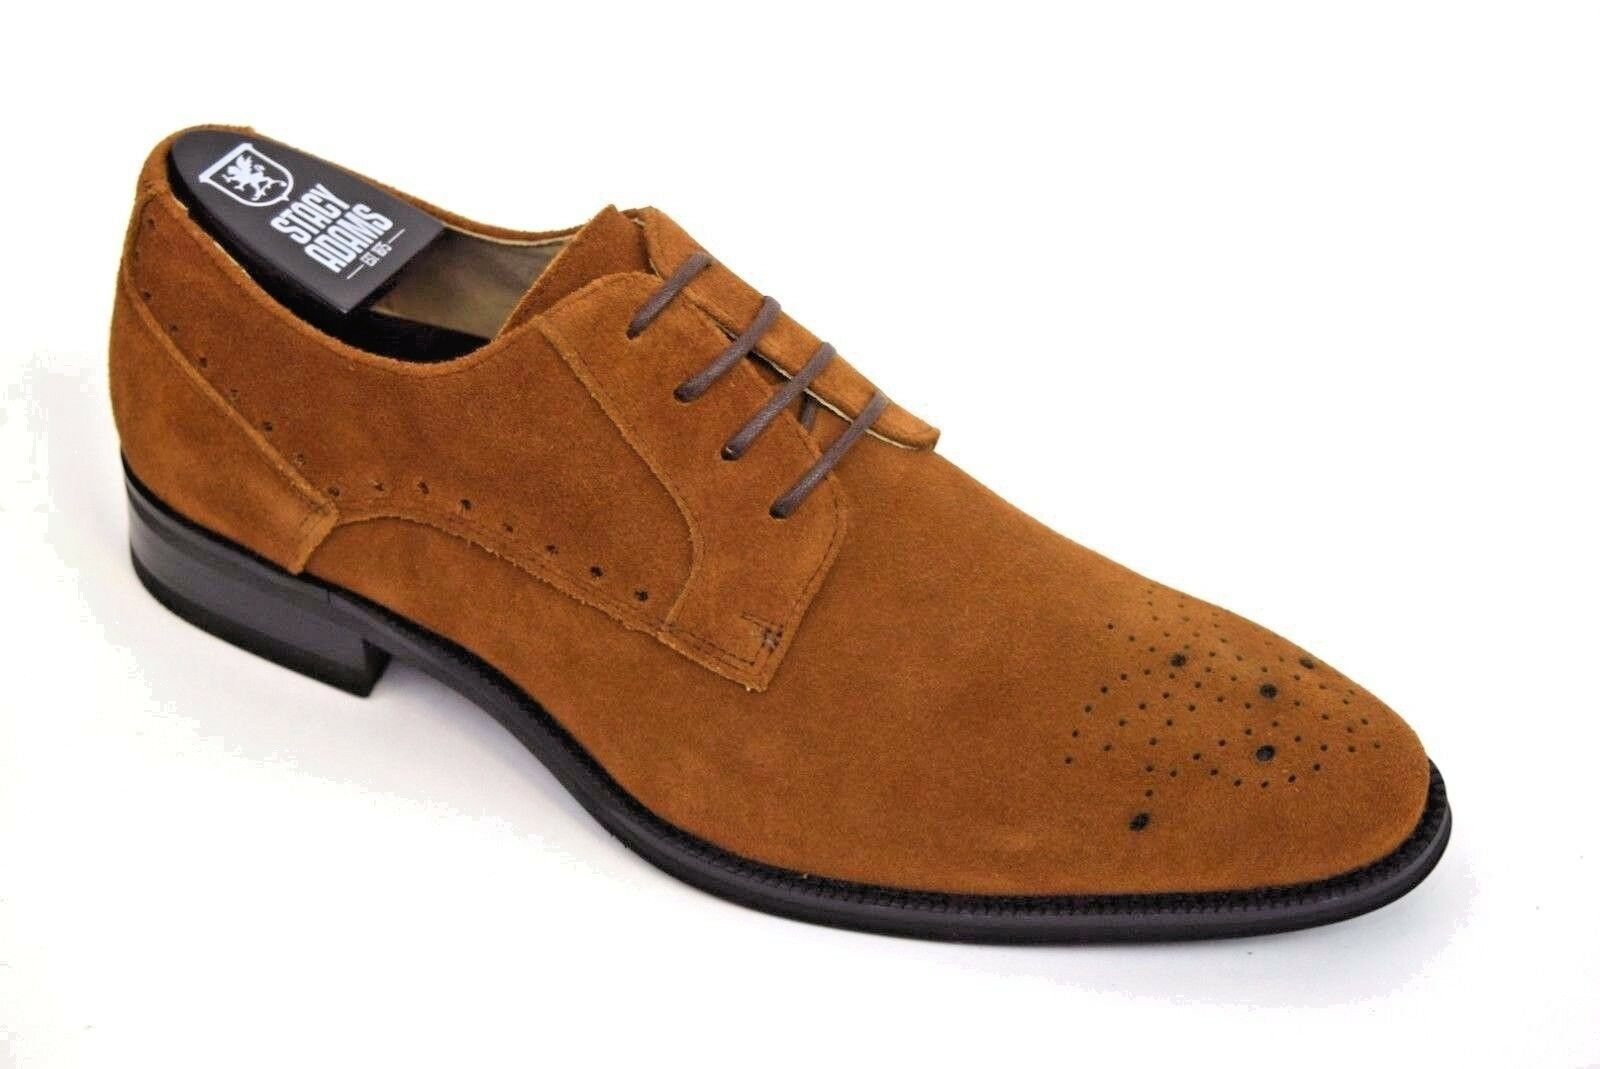 Men's Stacy Adams Dress Casual shoes Camel Suede Leather Oxford KENSINGTON 25002